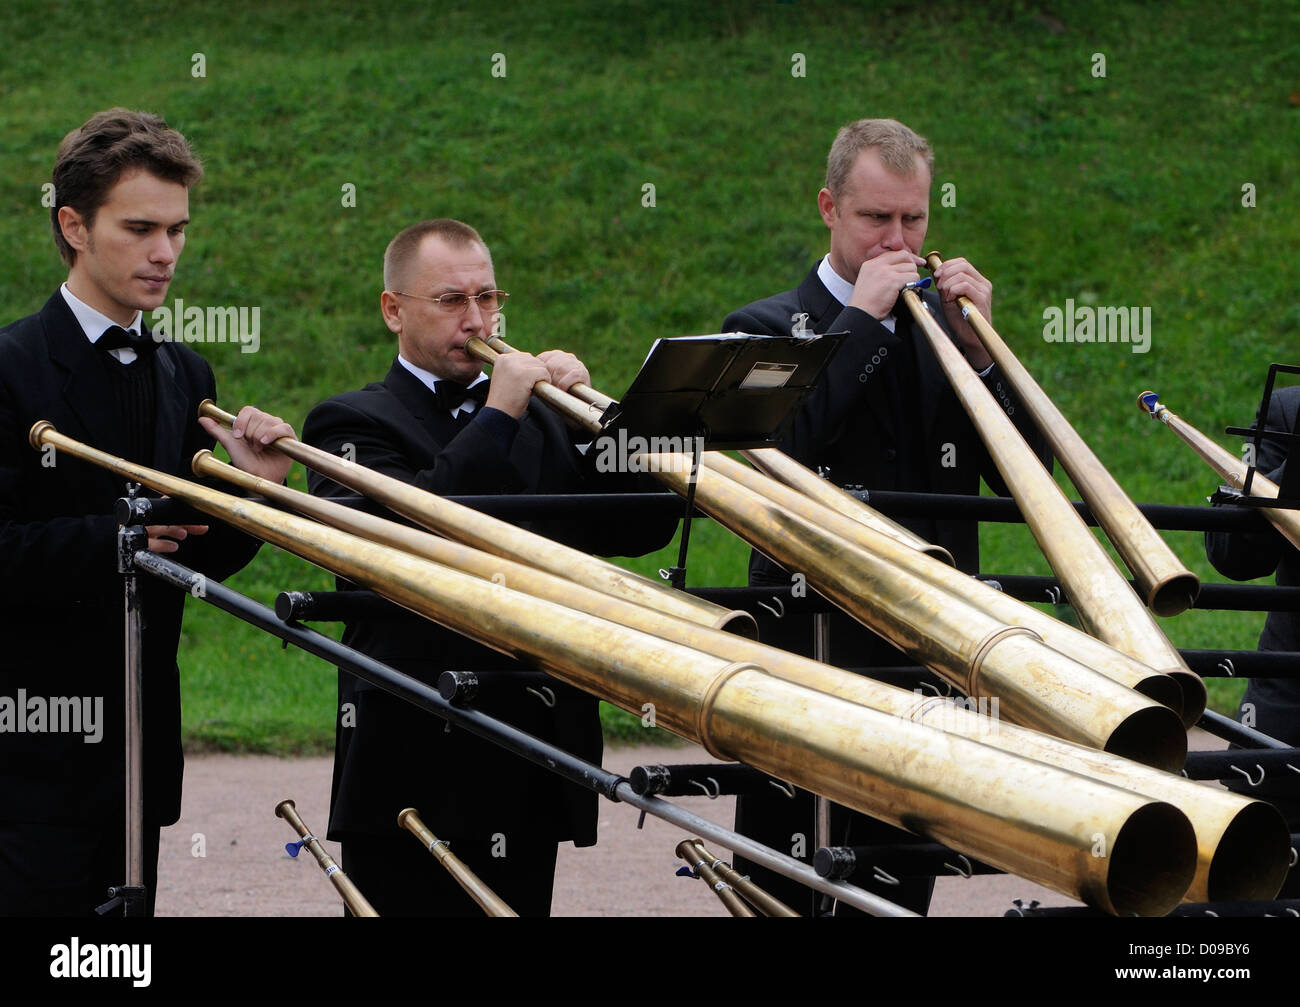 A band playing single tone brass horns entertains visitors at Peterhof. St Petersburg, Russia. - Stock Image